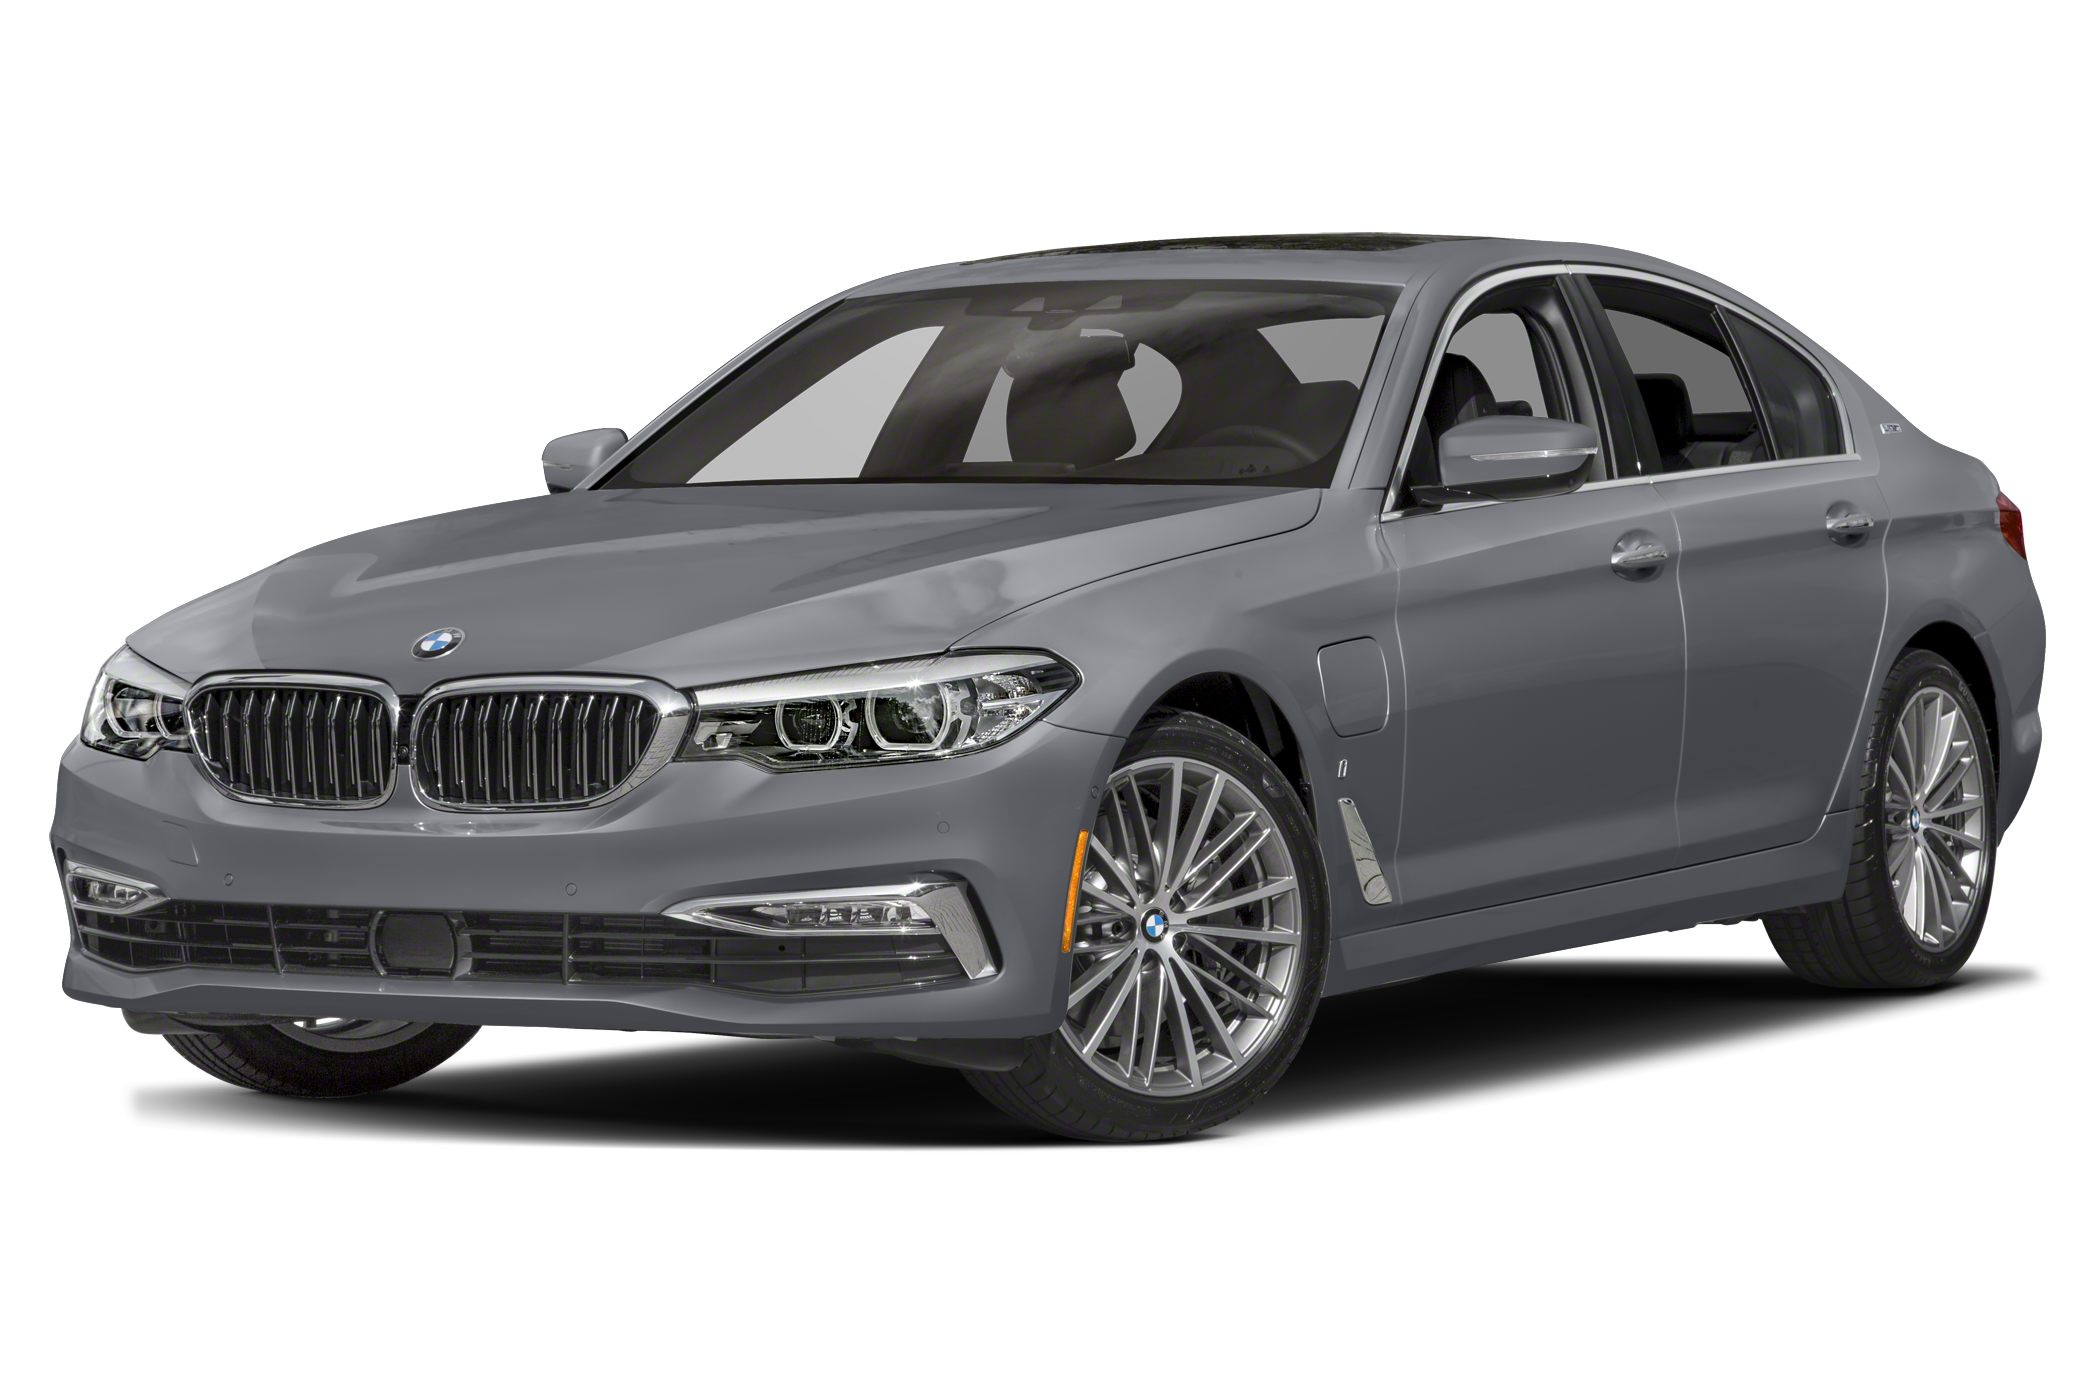 2020 Bmw 530e Xdrive Iperformance 4dr All Wheel Drive Sedan Specs And Prices